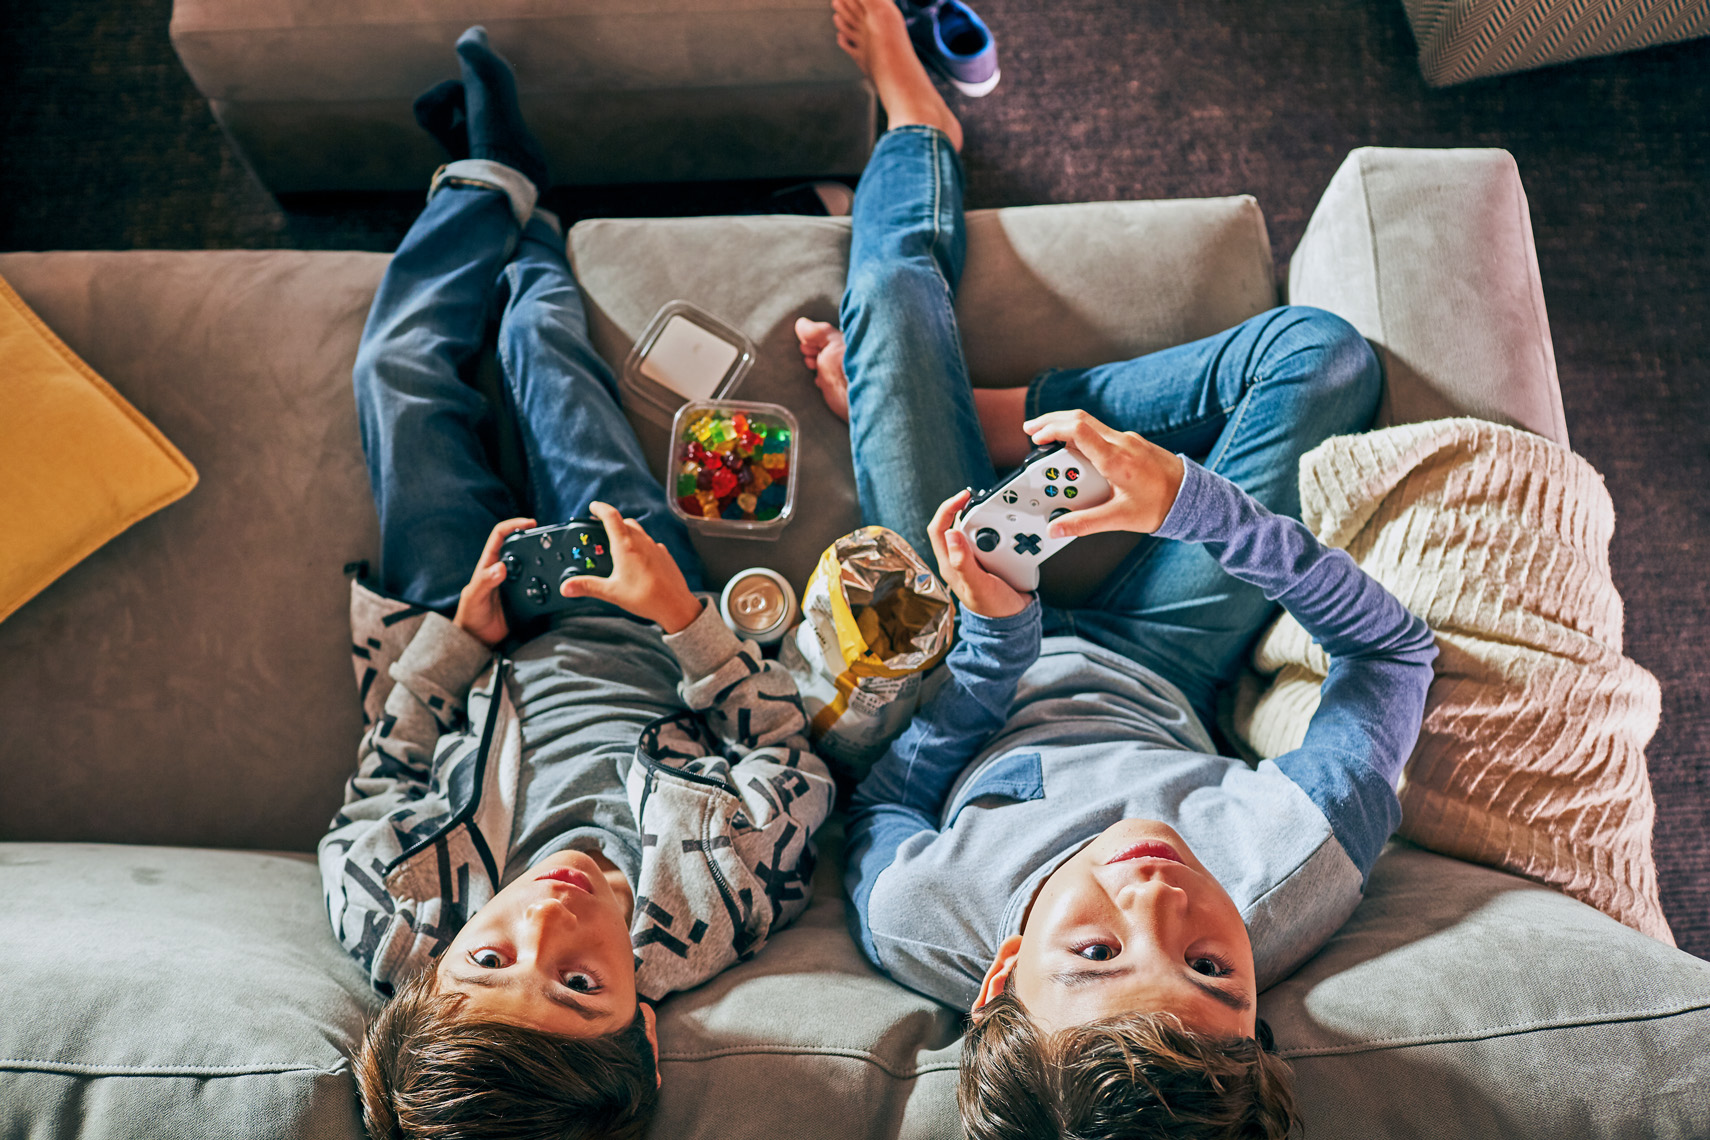 Kids pause from playing video games in this image by Leah Verwey